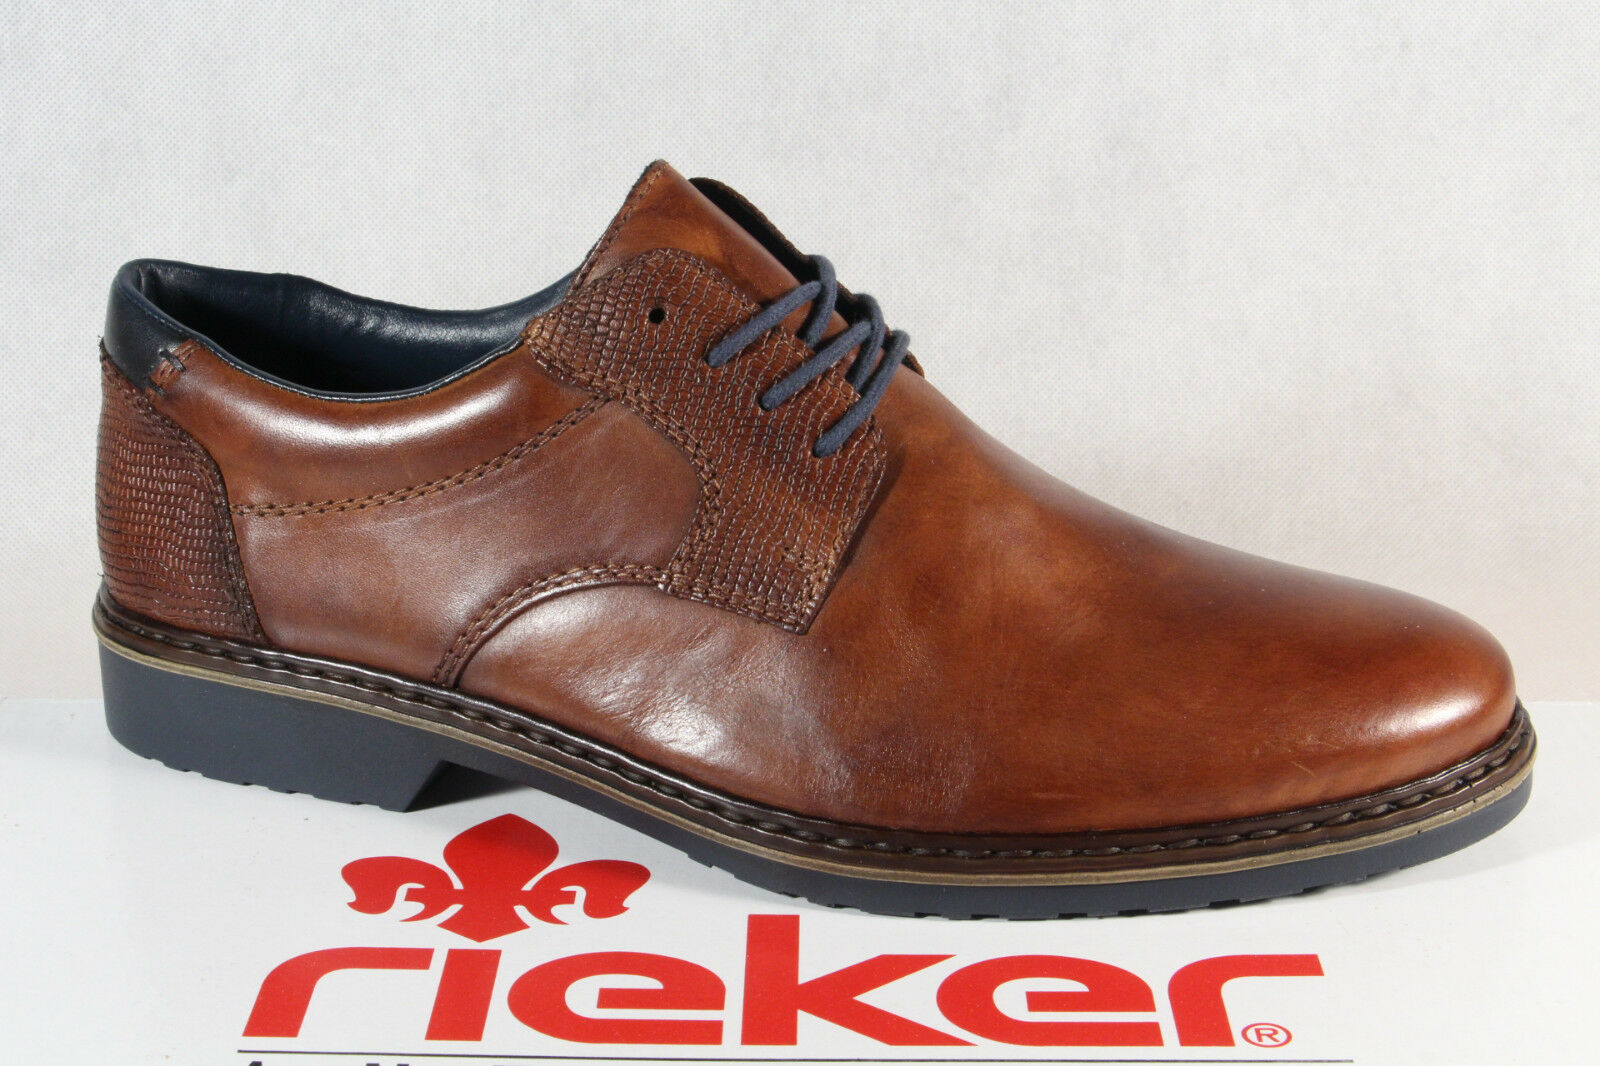 Rieker Slip on shoes Lace up Sneaker Brown Real Leather 16541 New